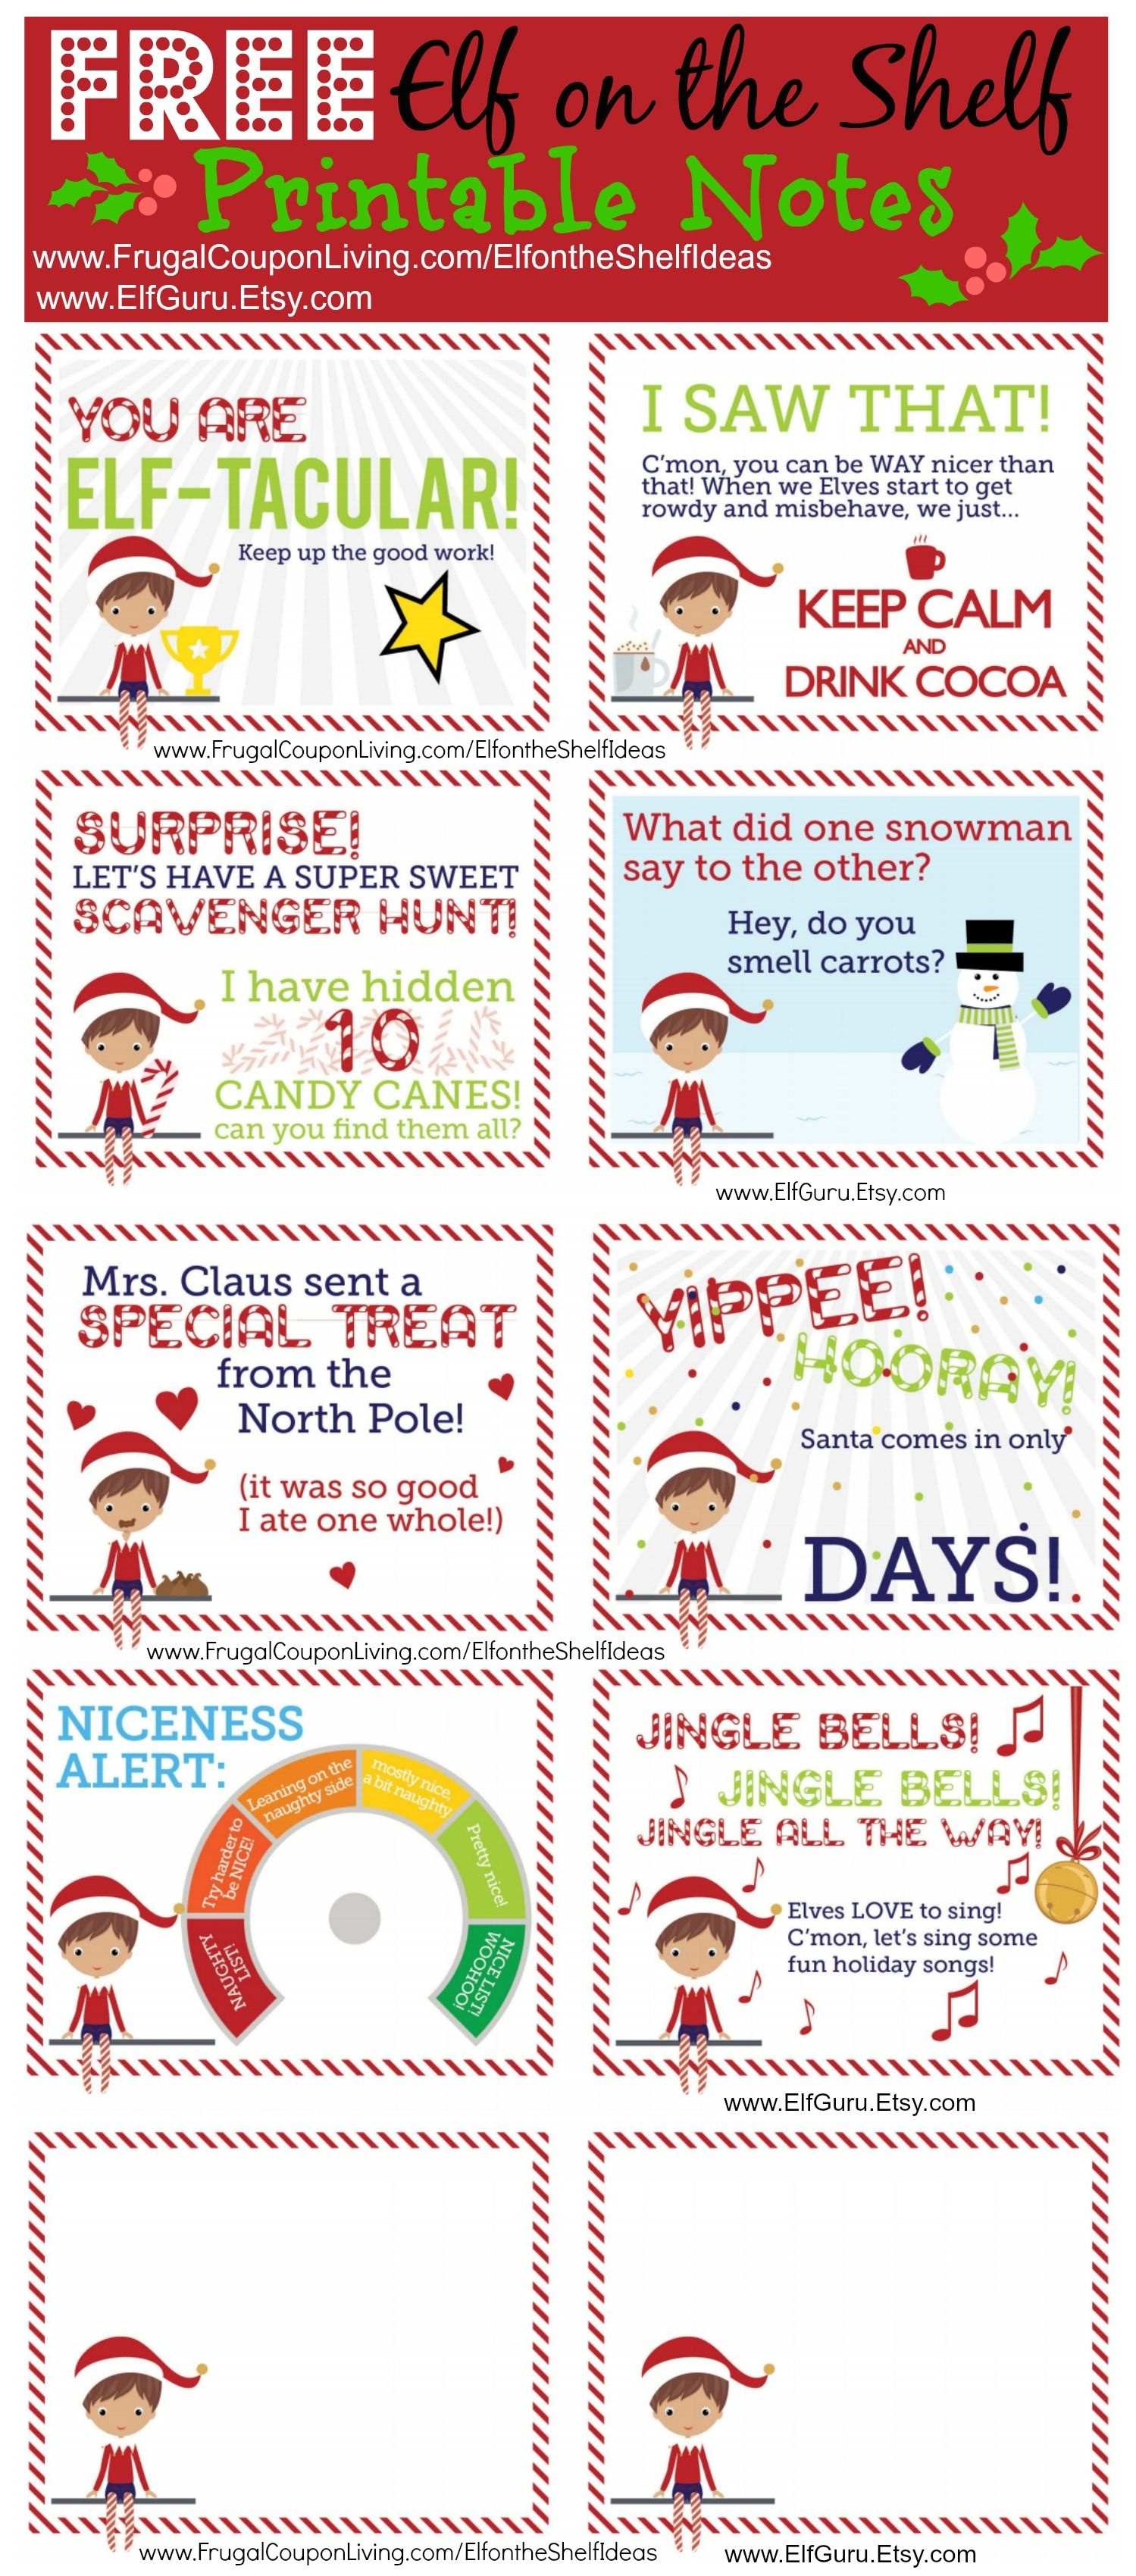 Free Elf On The Shelf Notes. | Holiday: Elf On The Shelf Ideas | Elf - Free Printable Elf On The Shelf Notes